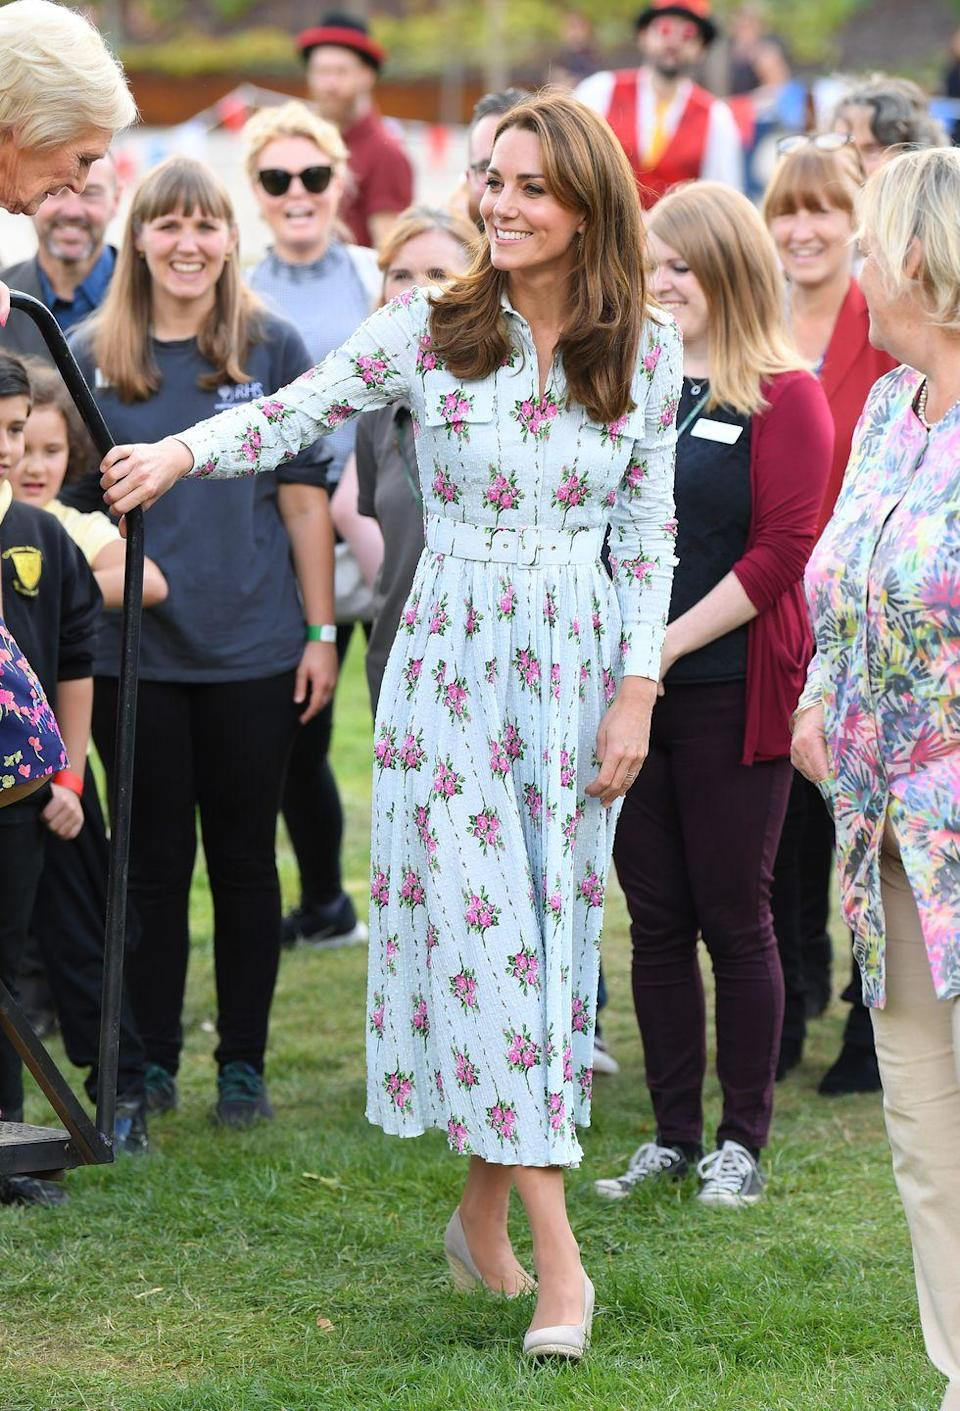 """<p>The Duchess stunned in <a href=""""https://www.townandcountrymag.com/style/fashion-trends/a28965273/kate-middleton-floral-emilia-wickstead-back-natural-play-garden-photos/"""" rel=""""nofollow noopener"""" target=""""_blank"""" data-ylk=""""slk:a floral Emilia Wickstead dress"""" class=""""link rapid-noclick-resp"""">a floral Emilia Wickstead dress</a> for a surprise appearance at the """"Back to Nature"""" festival in Wisley. She paired the breezy dress with nude wedges.</p>"""